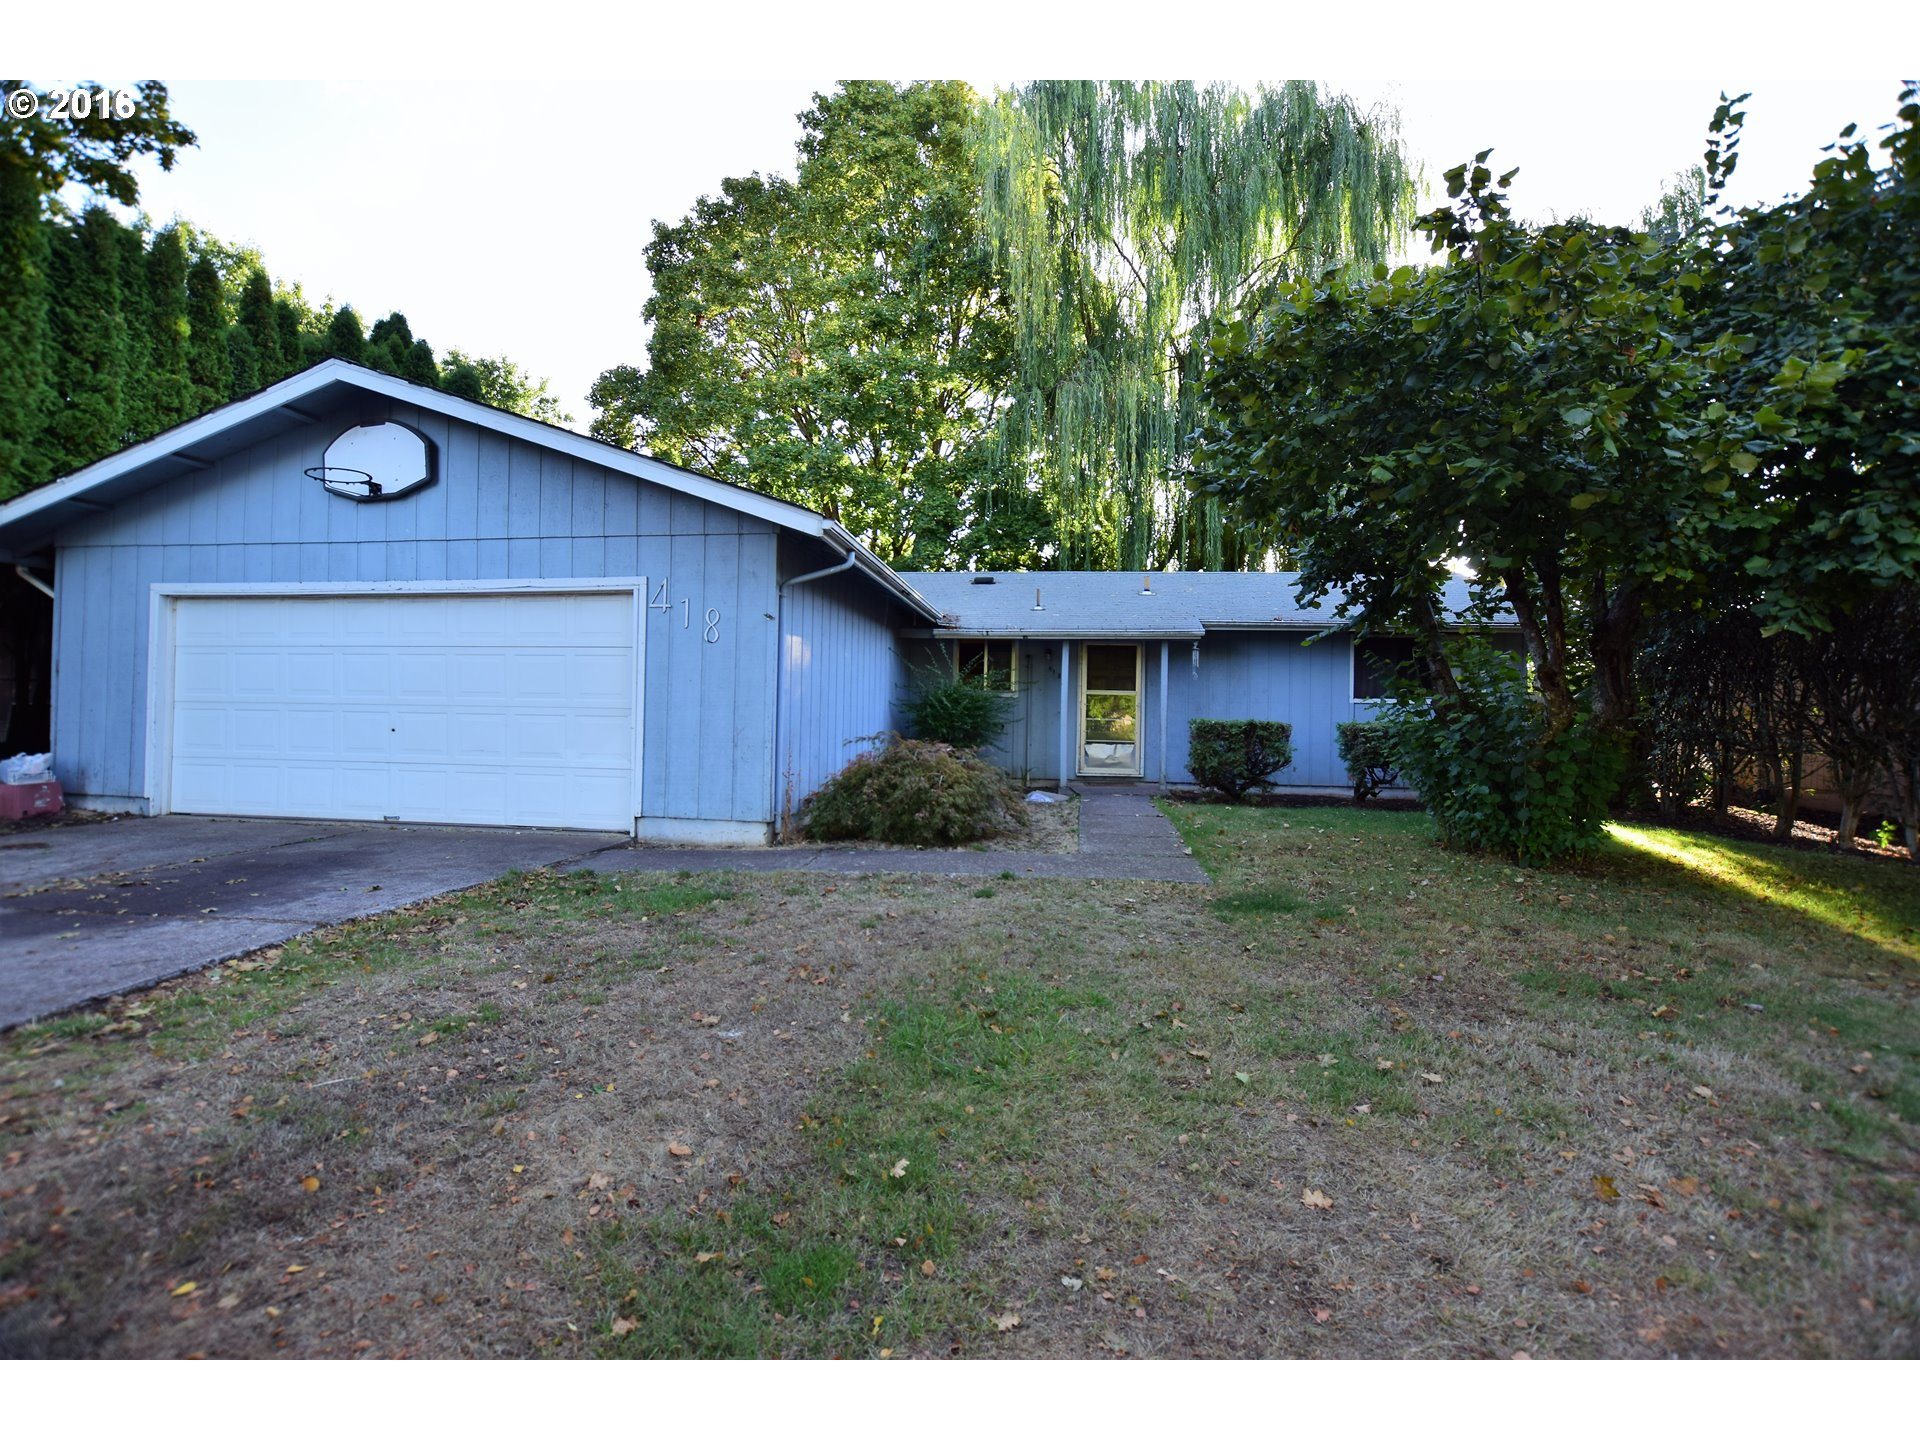 418 45TH AVE, Salem OR 97301